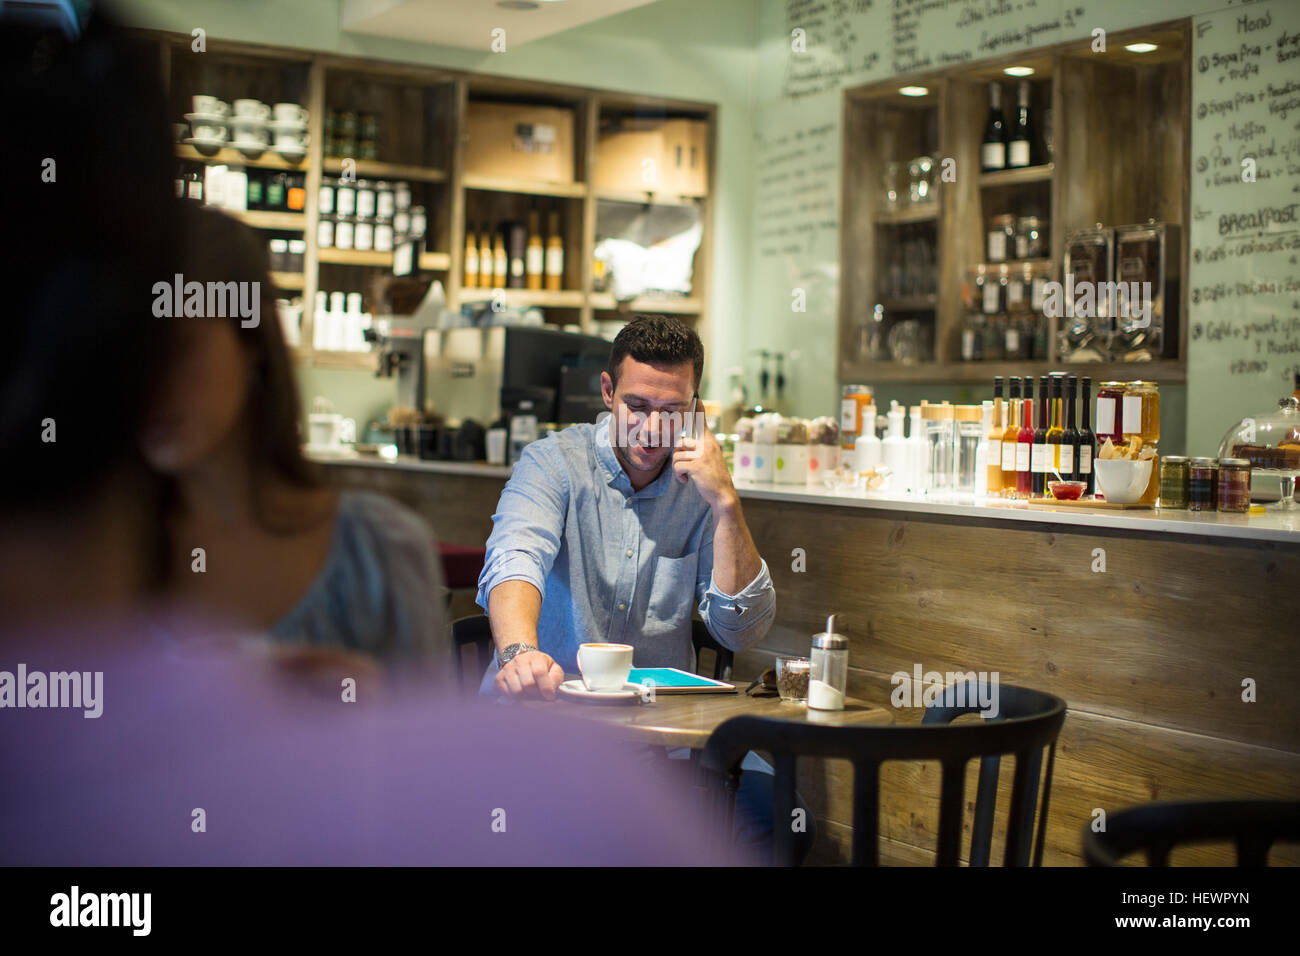 Man sitting in cafe talking on smartphone - Stock Image